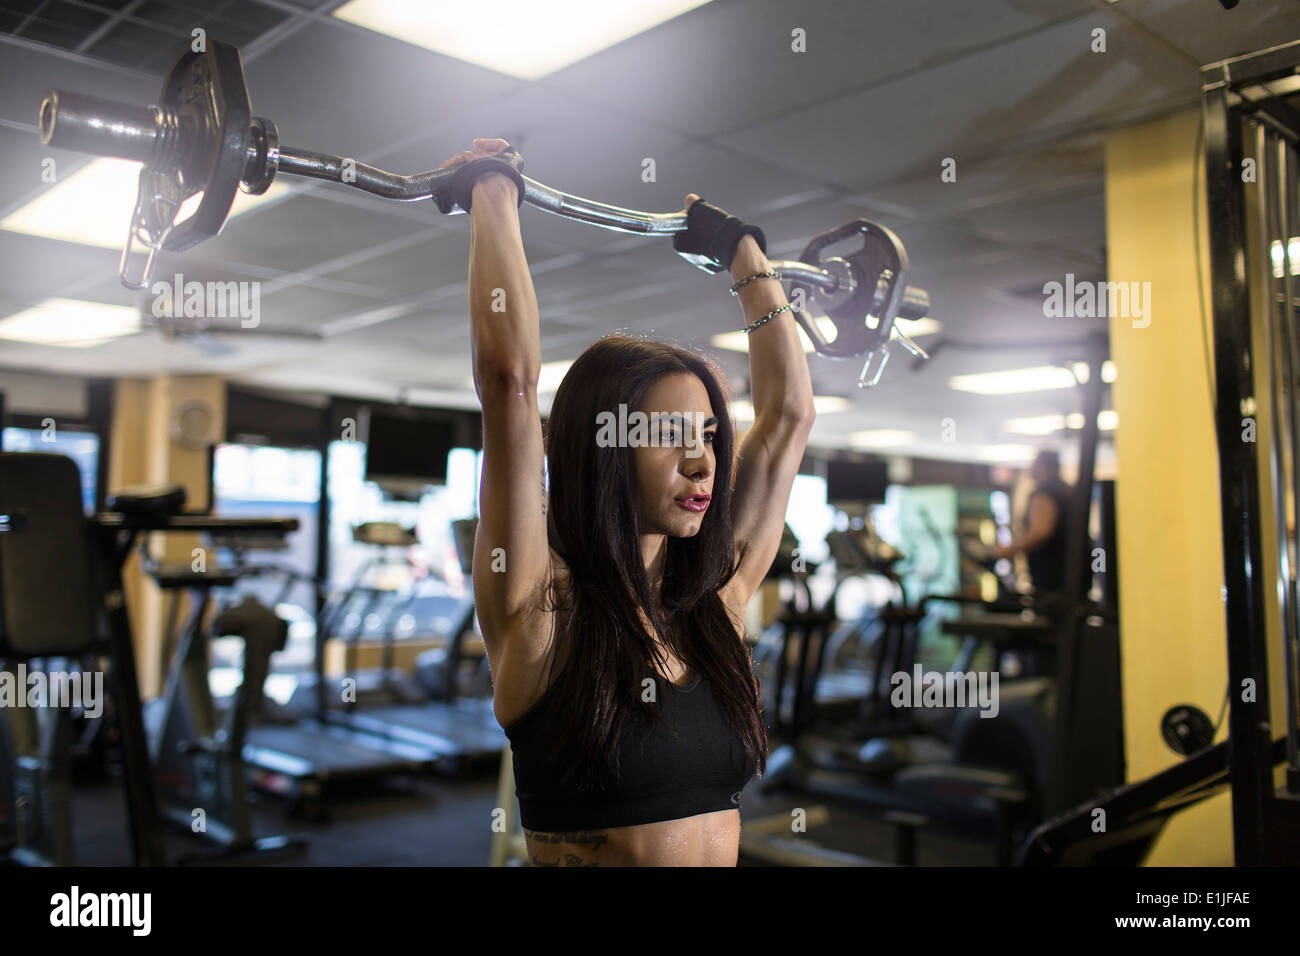 Mid adult woman using barbell in gym - Stock Image